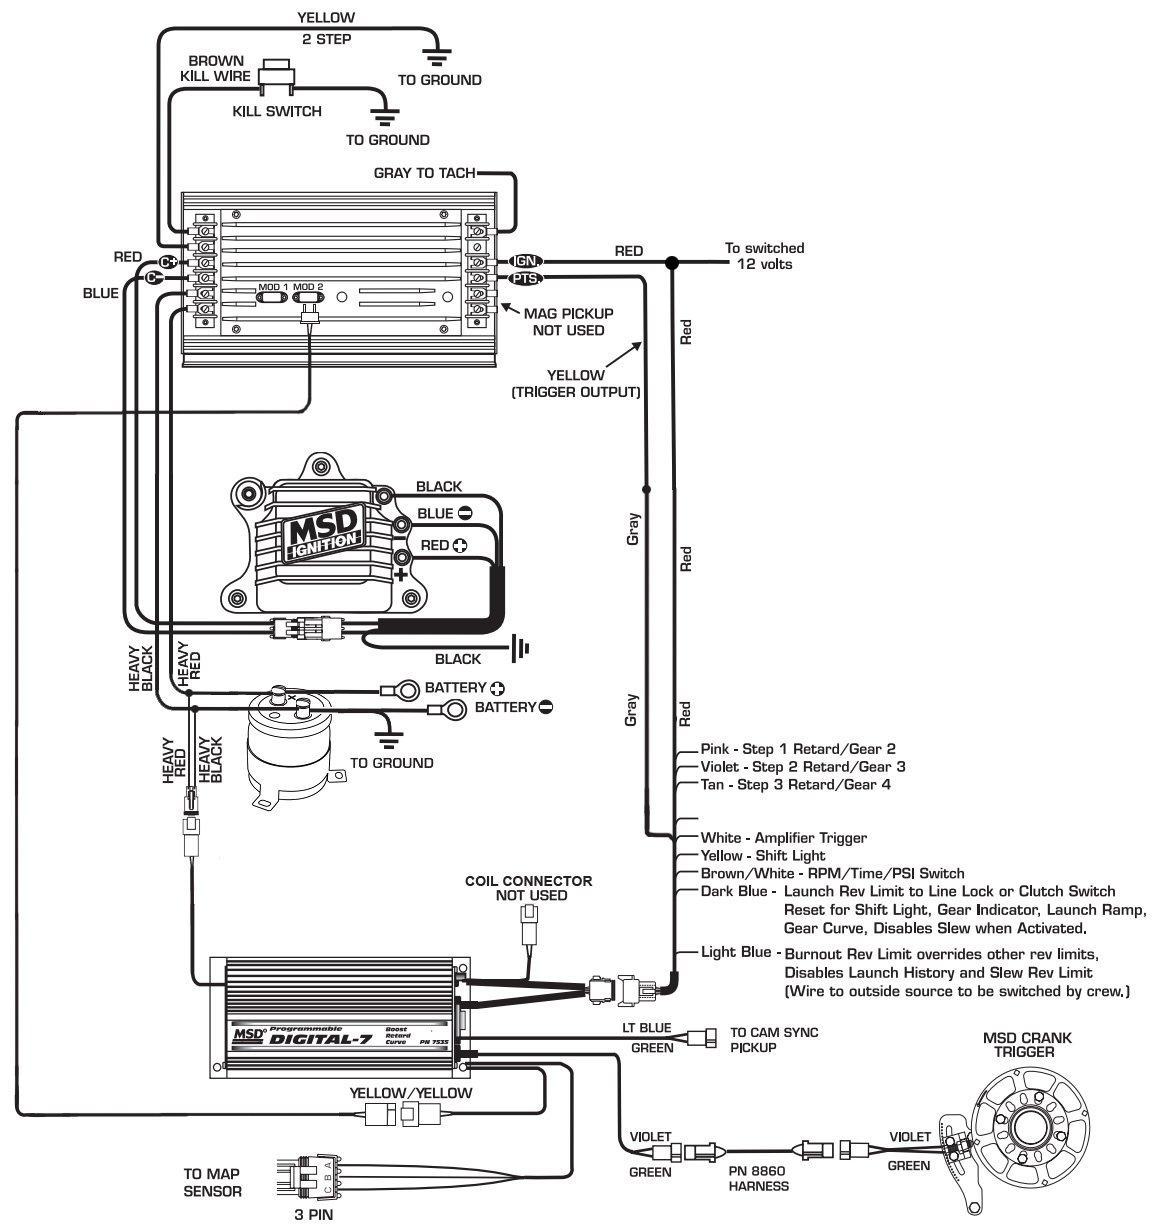 blog_diagrams_and_drawings_digital_7_drawings_7531_to_msd_10_7531_msd_10_8830_reva custom diagrams blog posts page 1 msd pro mag wiring diagram at crackthecode.co